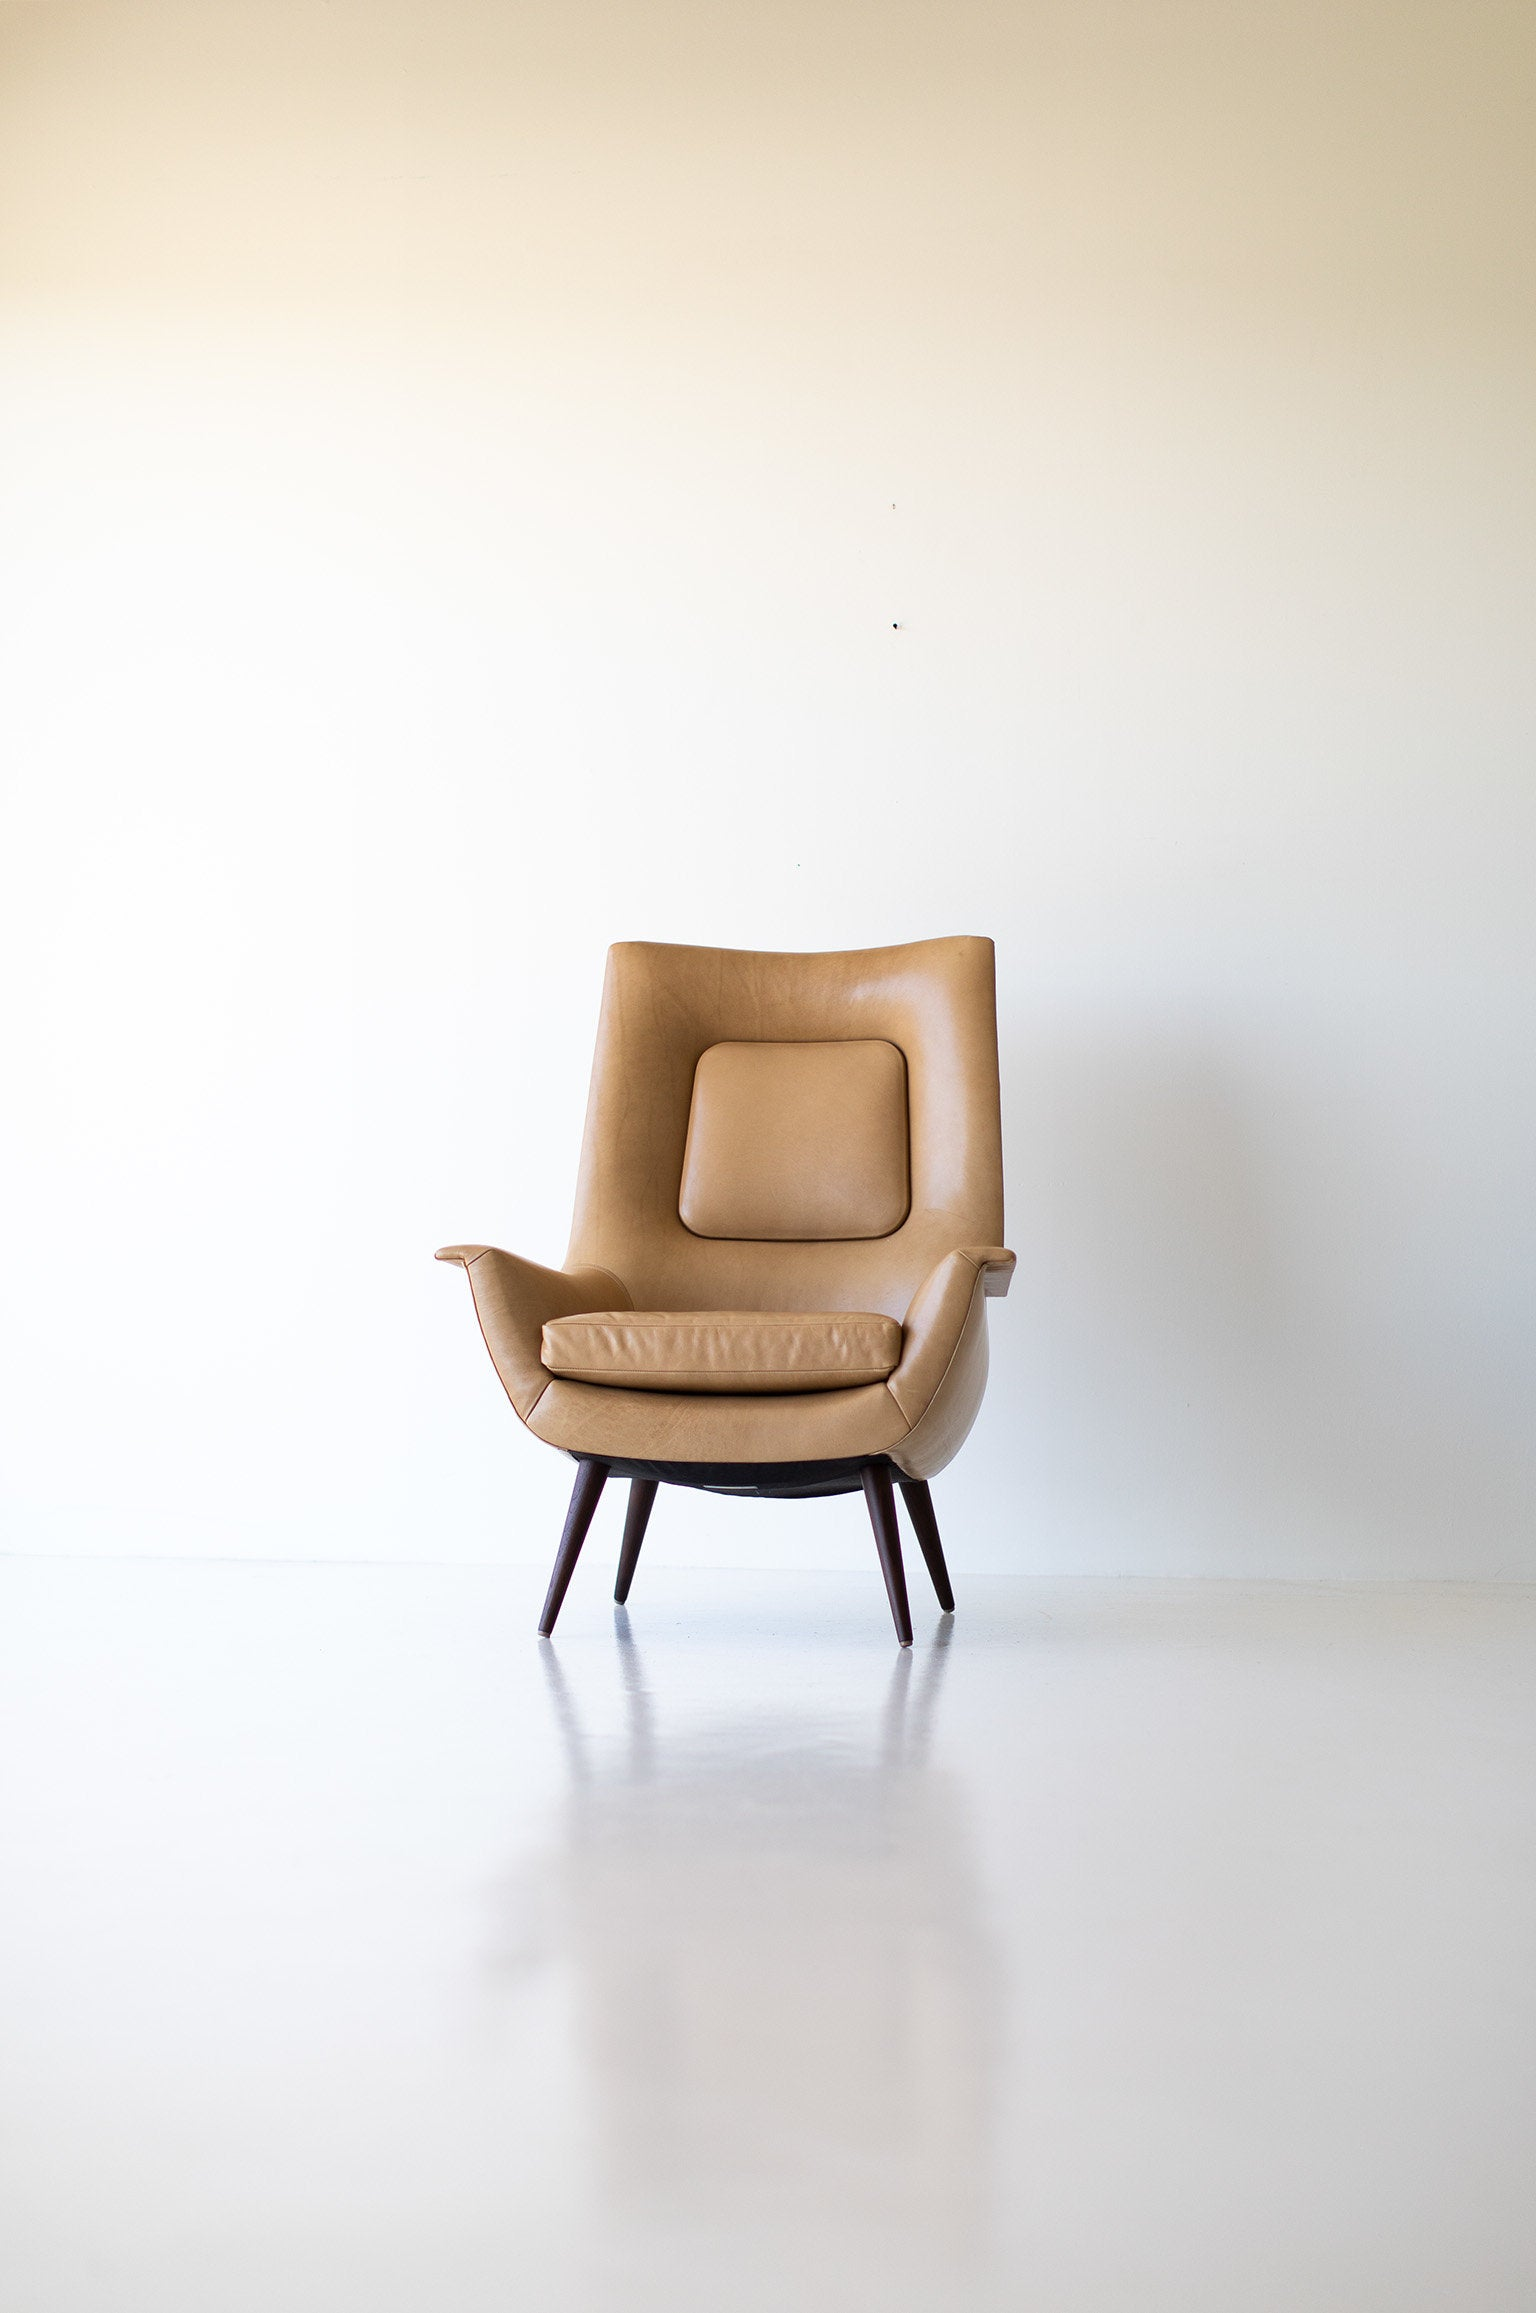 lawrence-peabody-chair-04